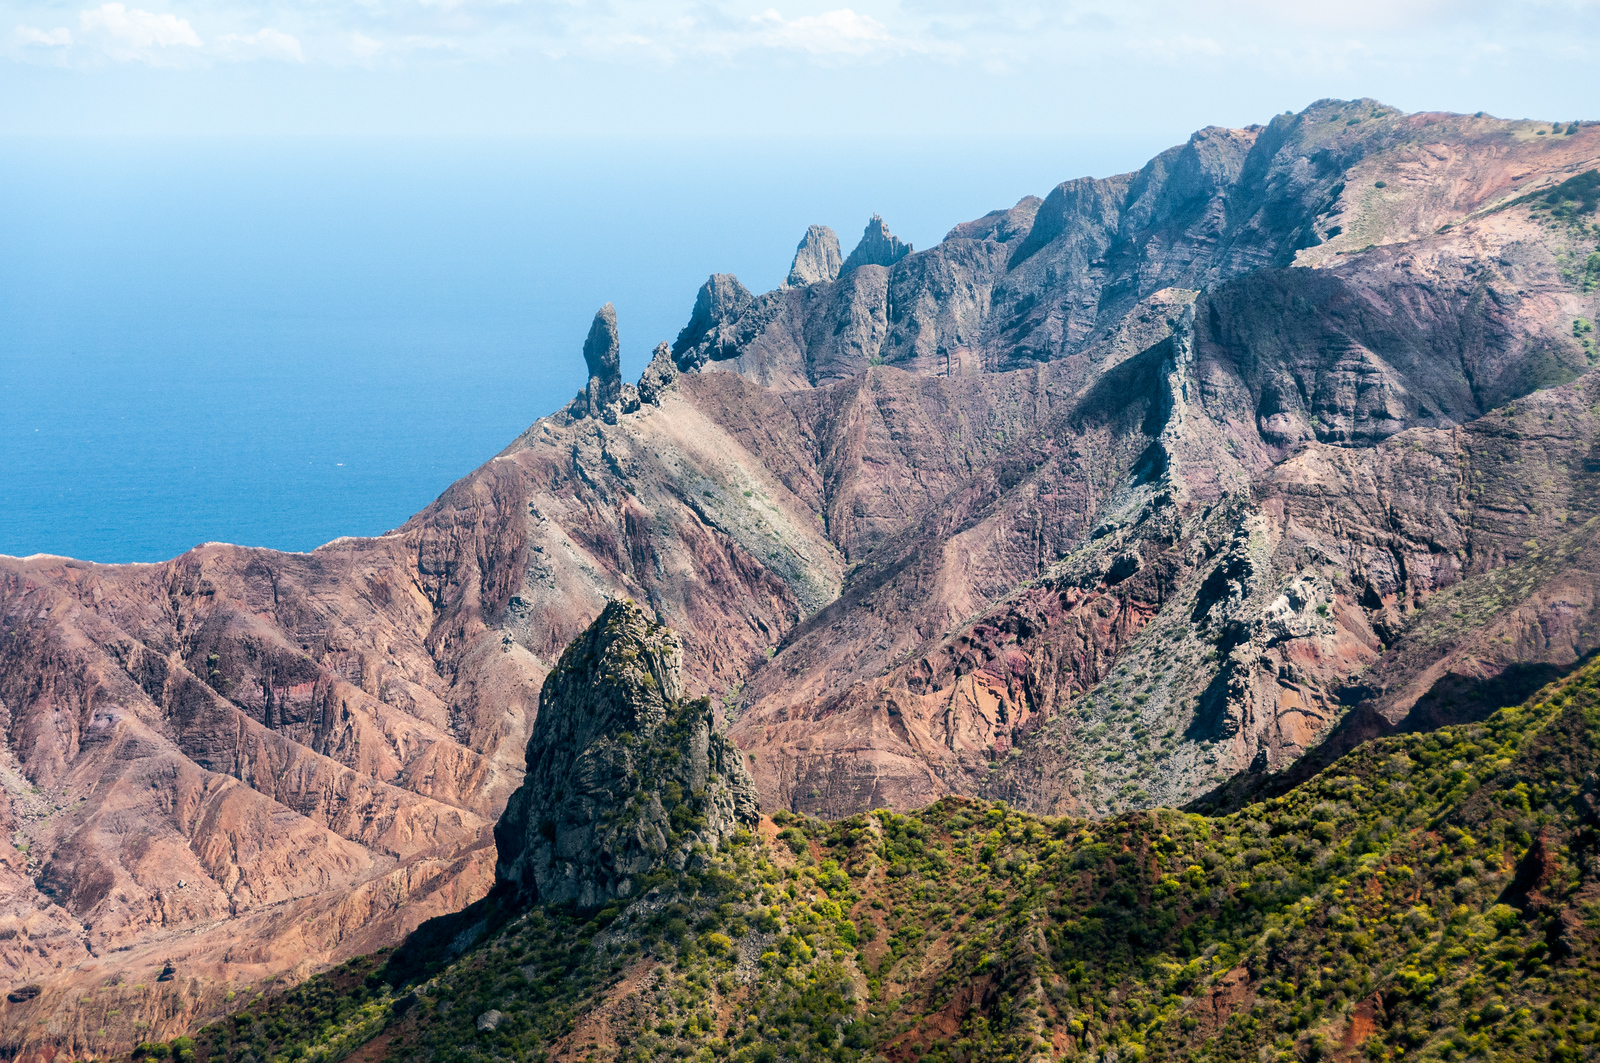 Lots Wife on the island of St Helena